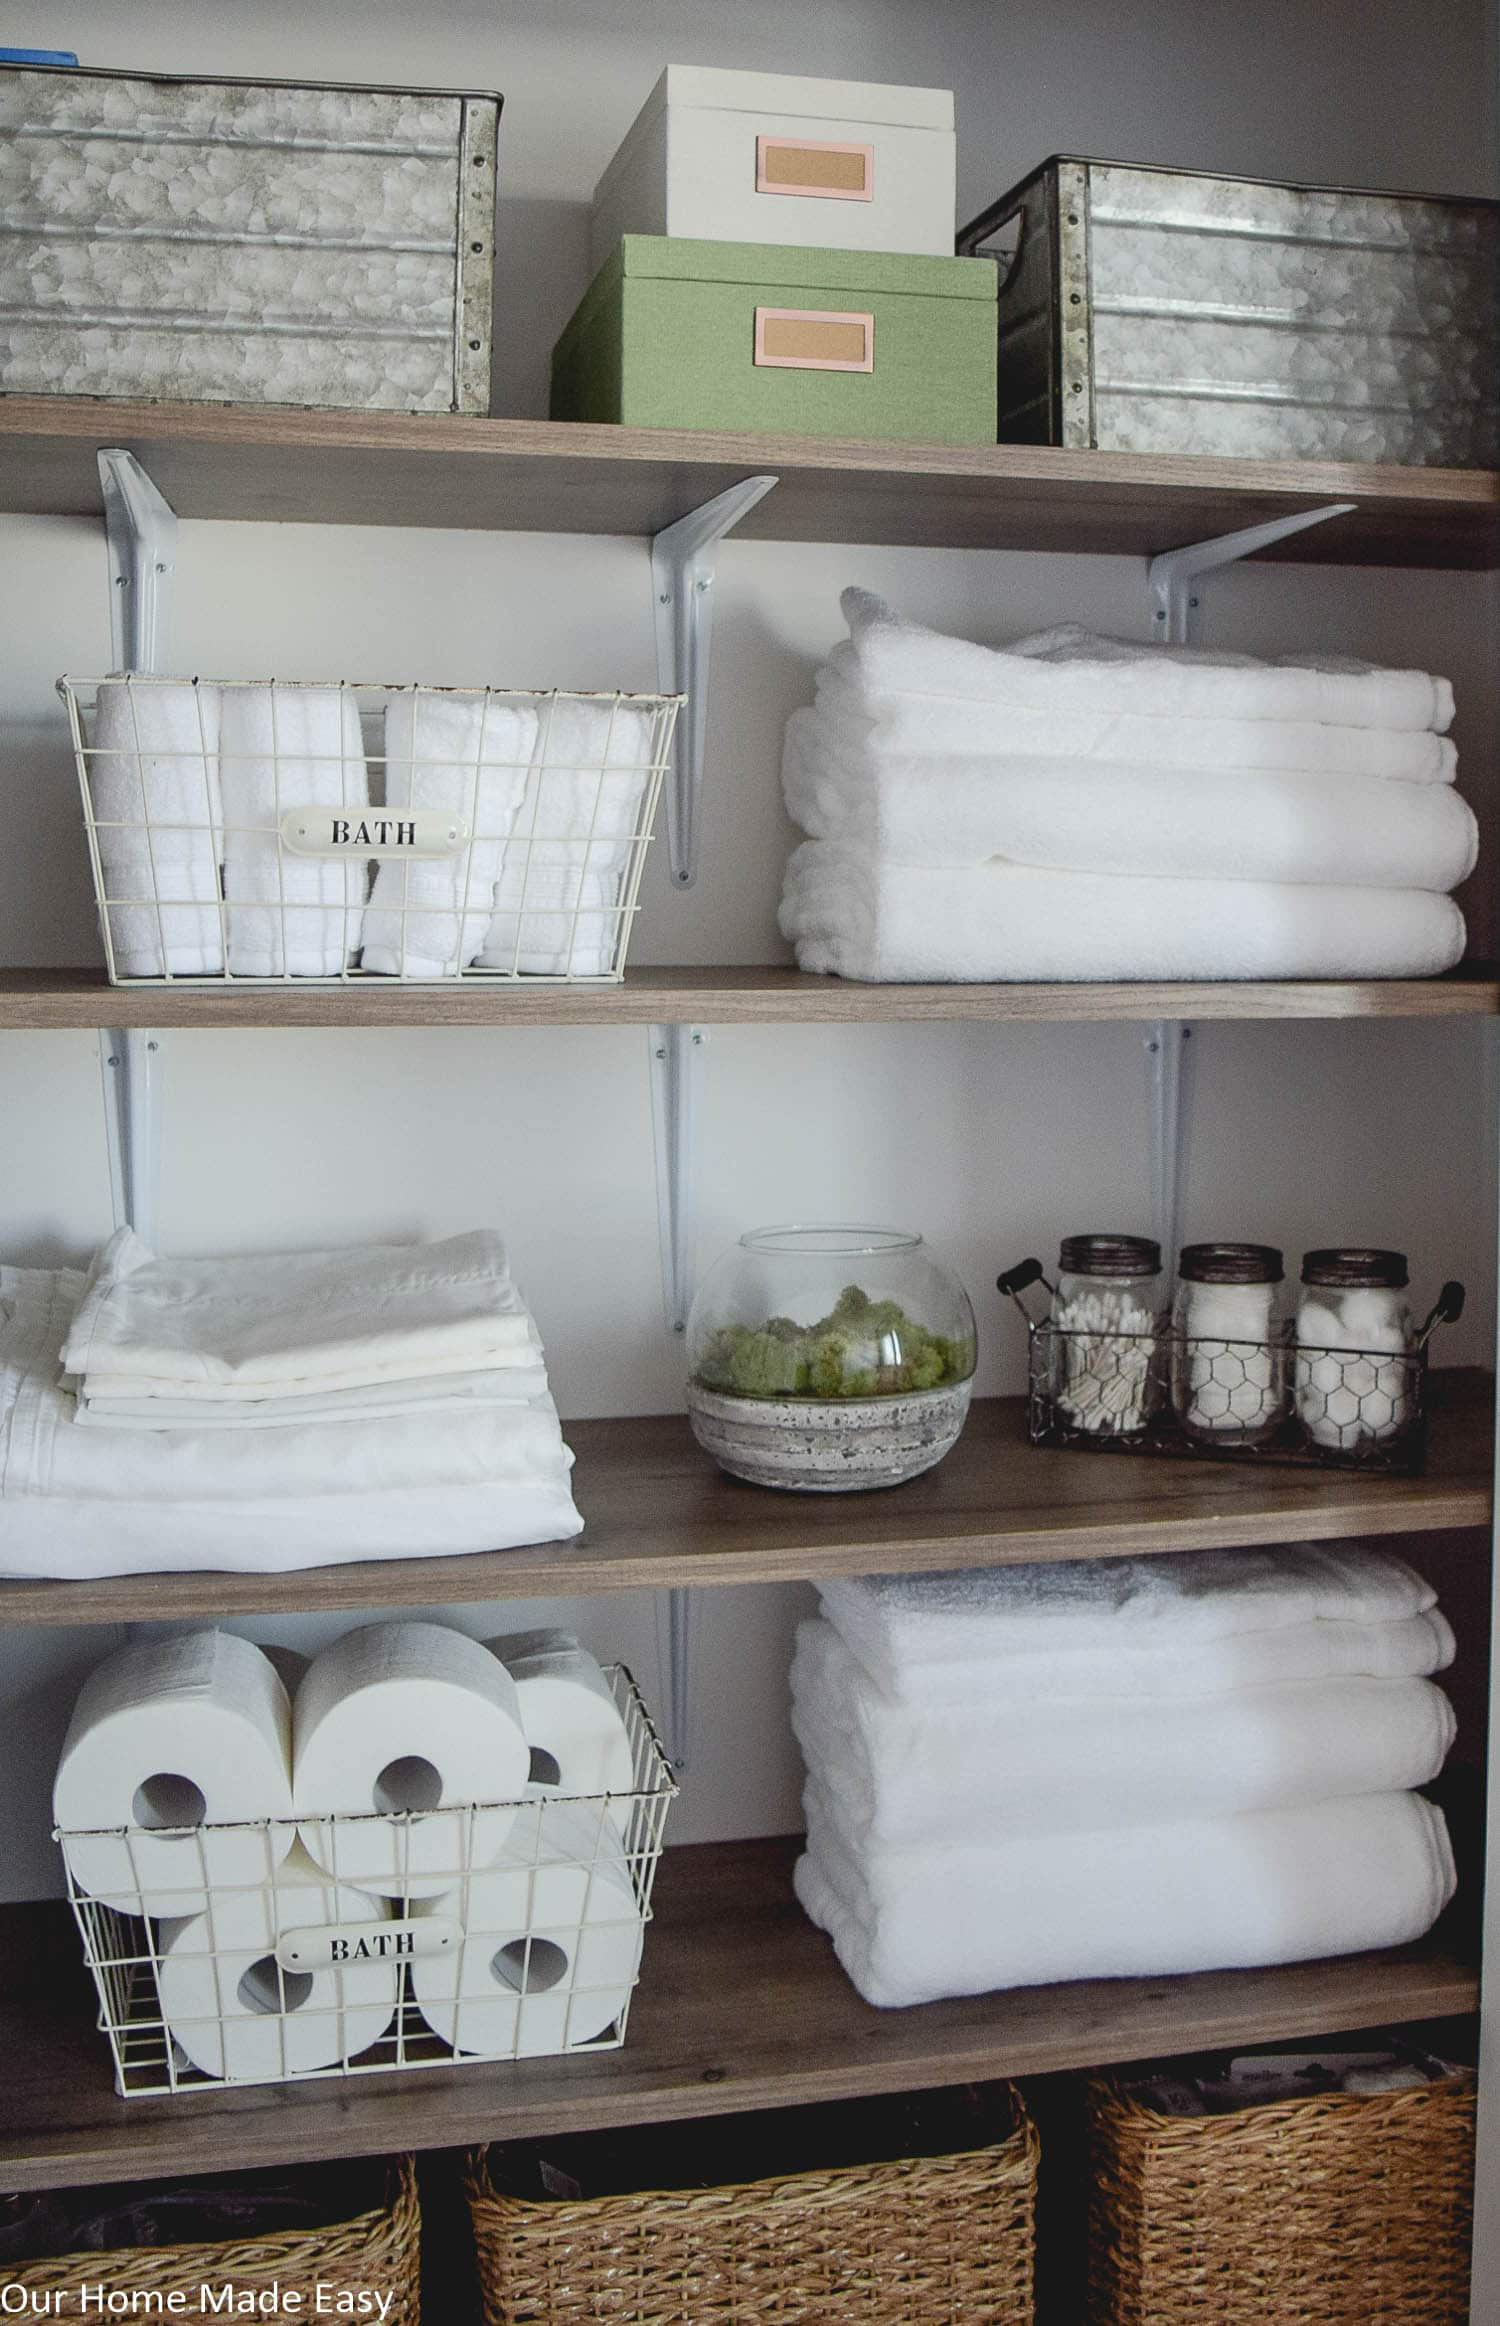 Organize the morning essentials like shower gear, towels, and more so your morning routine for school days is easy and foolproof